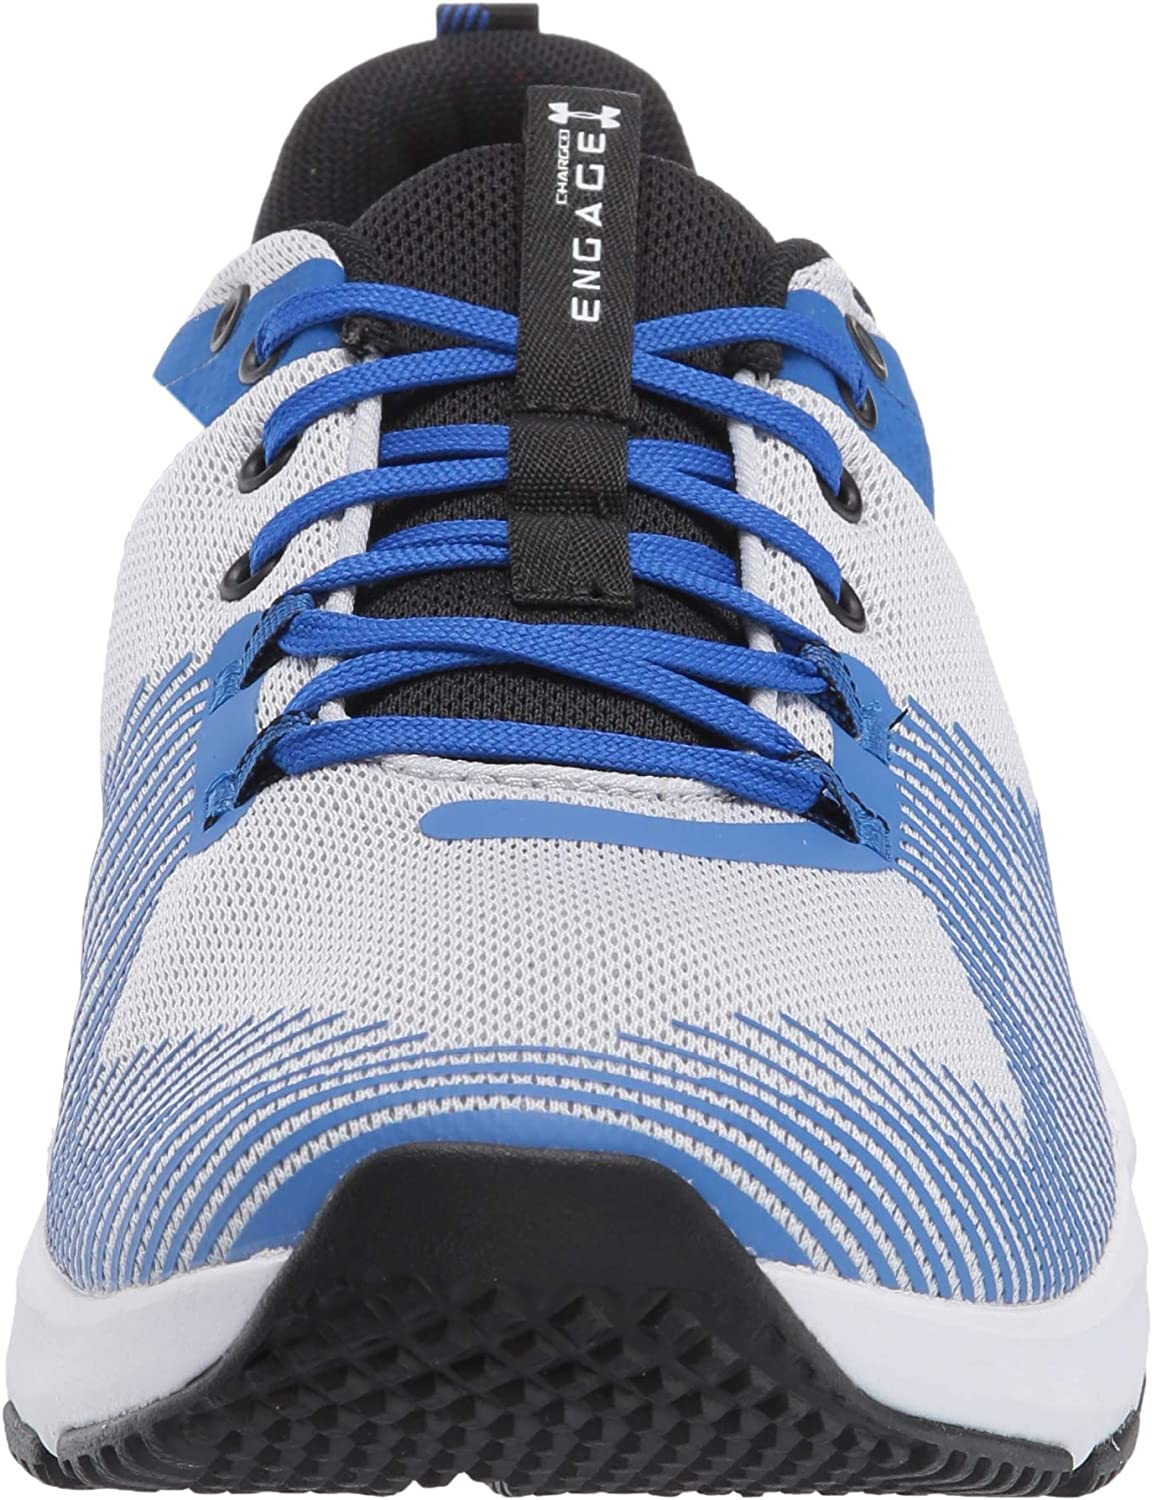 Under Armour Mens Charged Engage Sports Shoe